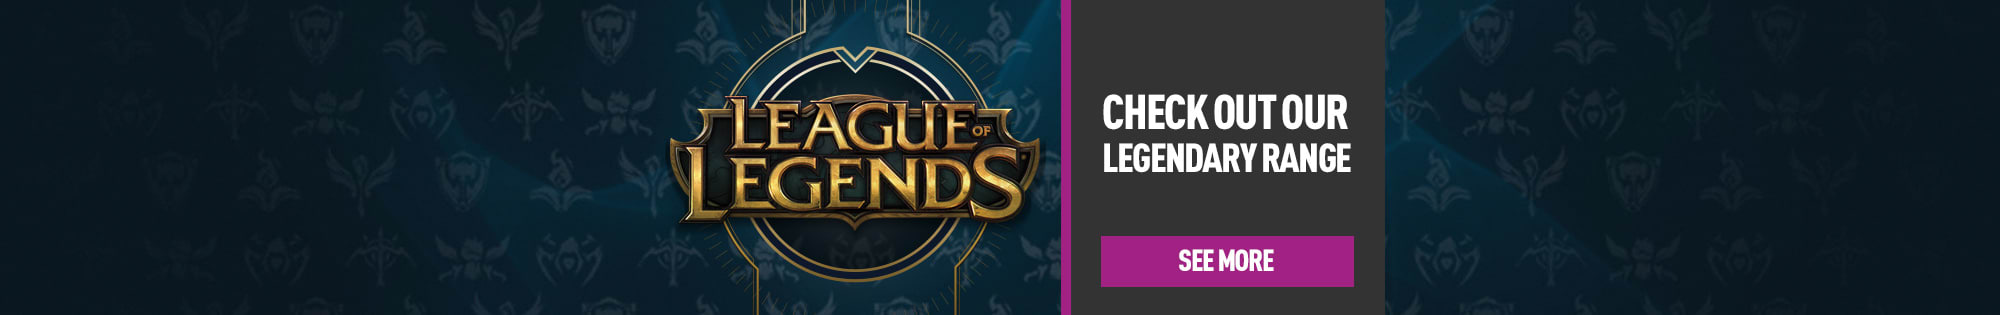 Exclusive League of Legends Merchandise In Store